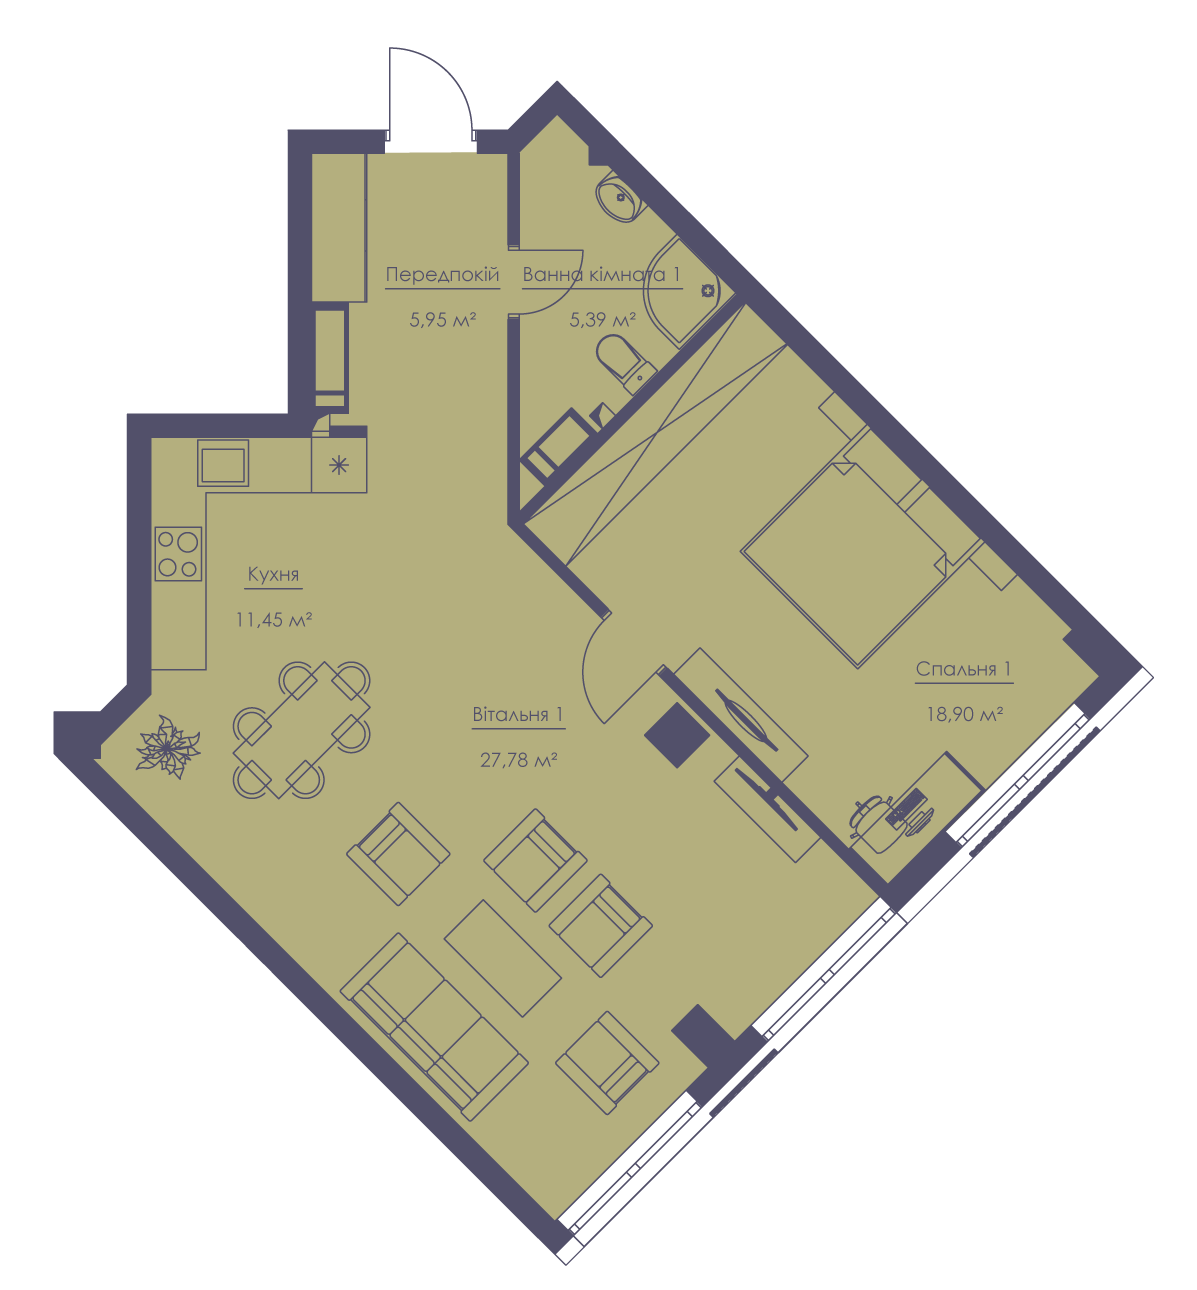 Apartment layout KV_113_3.2a_1_1_1-1